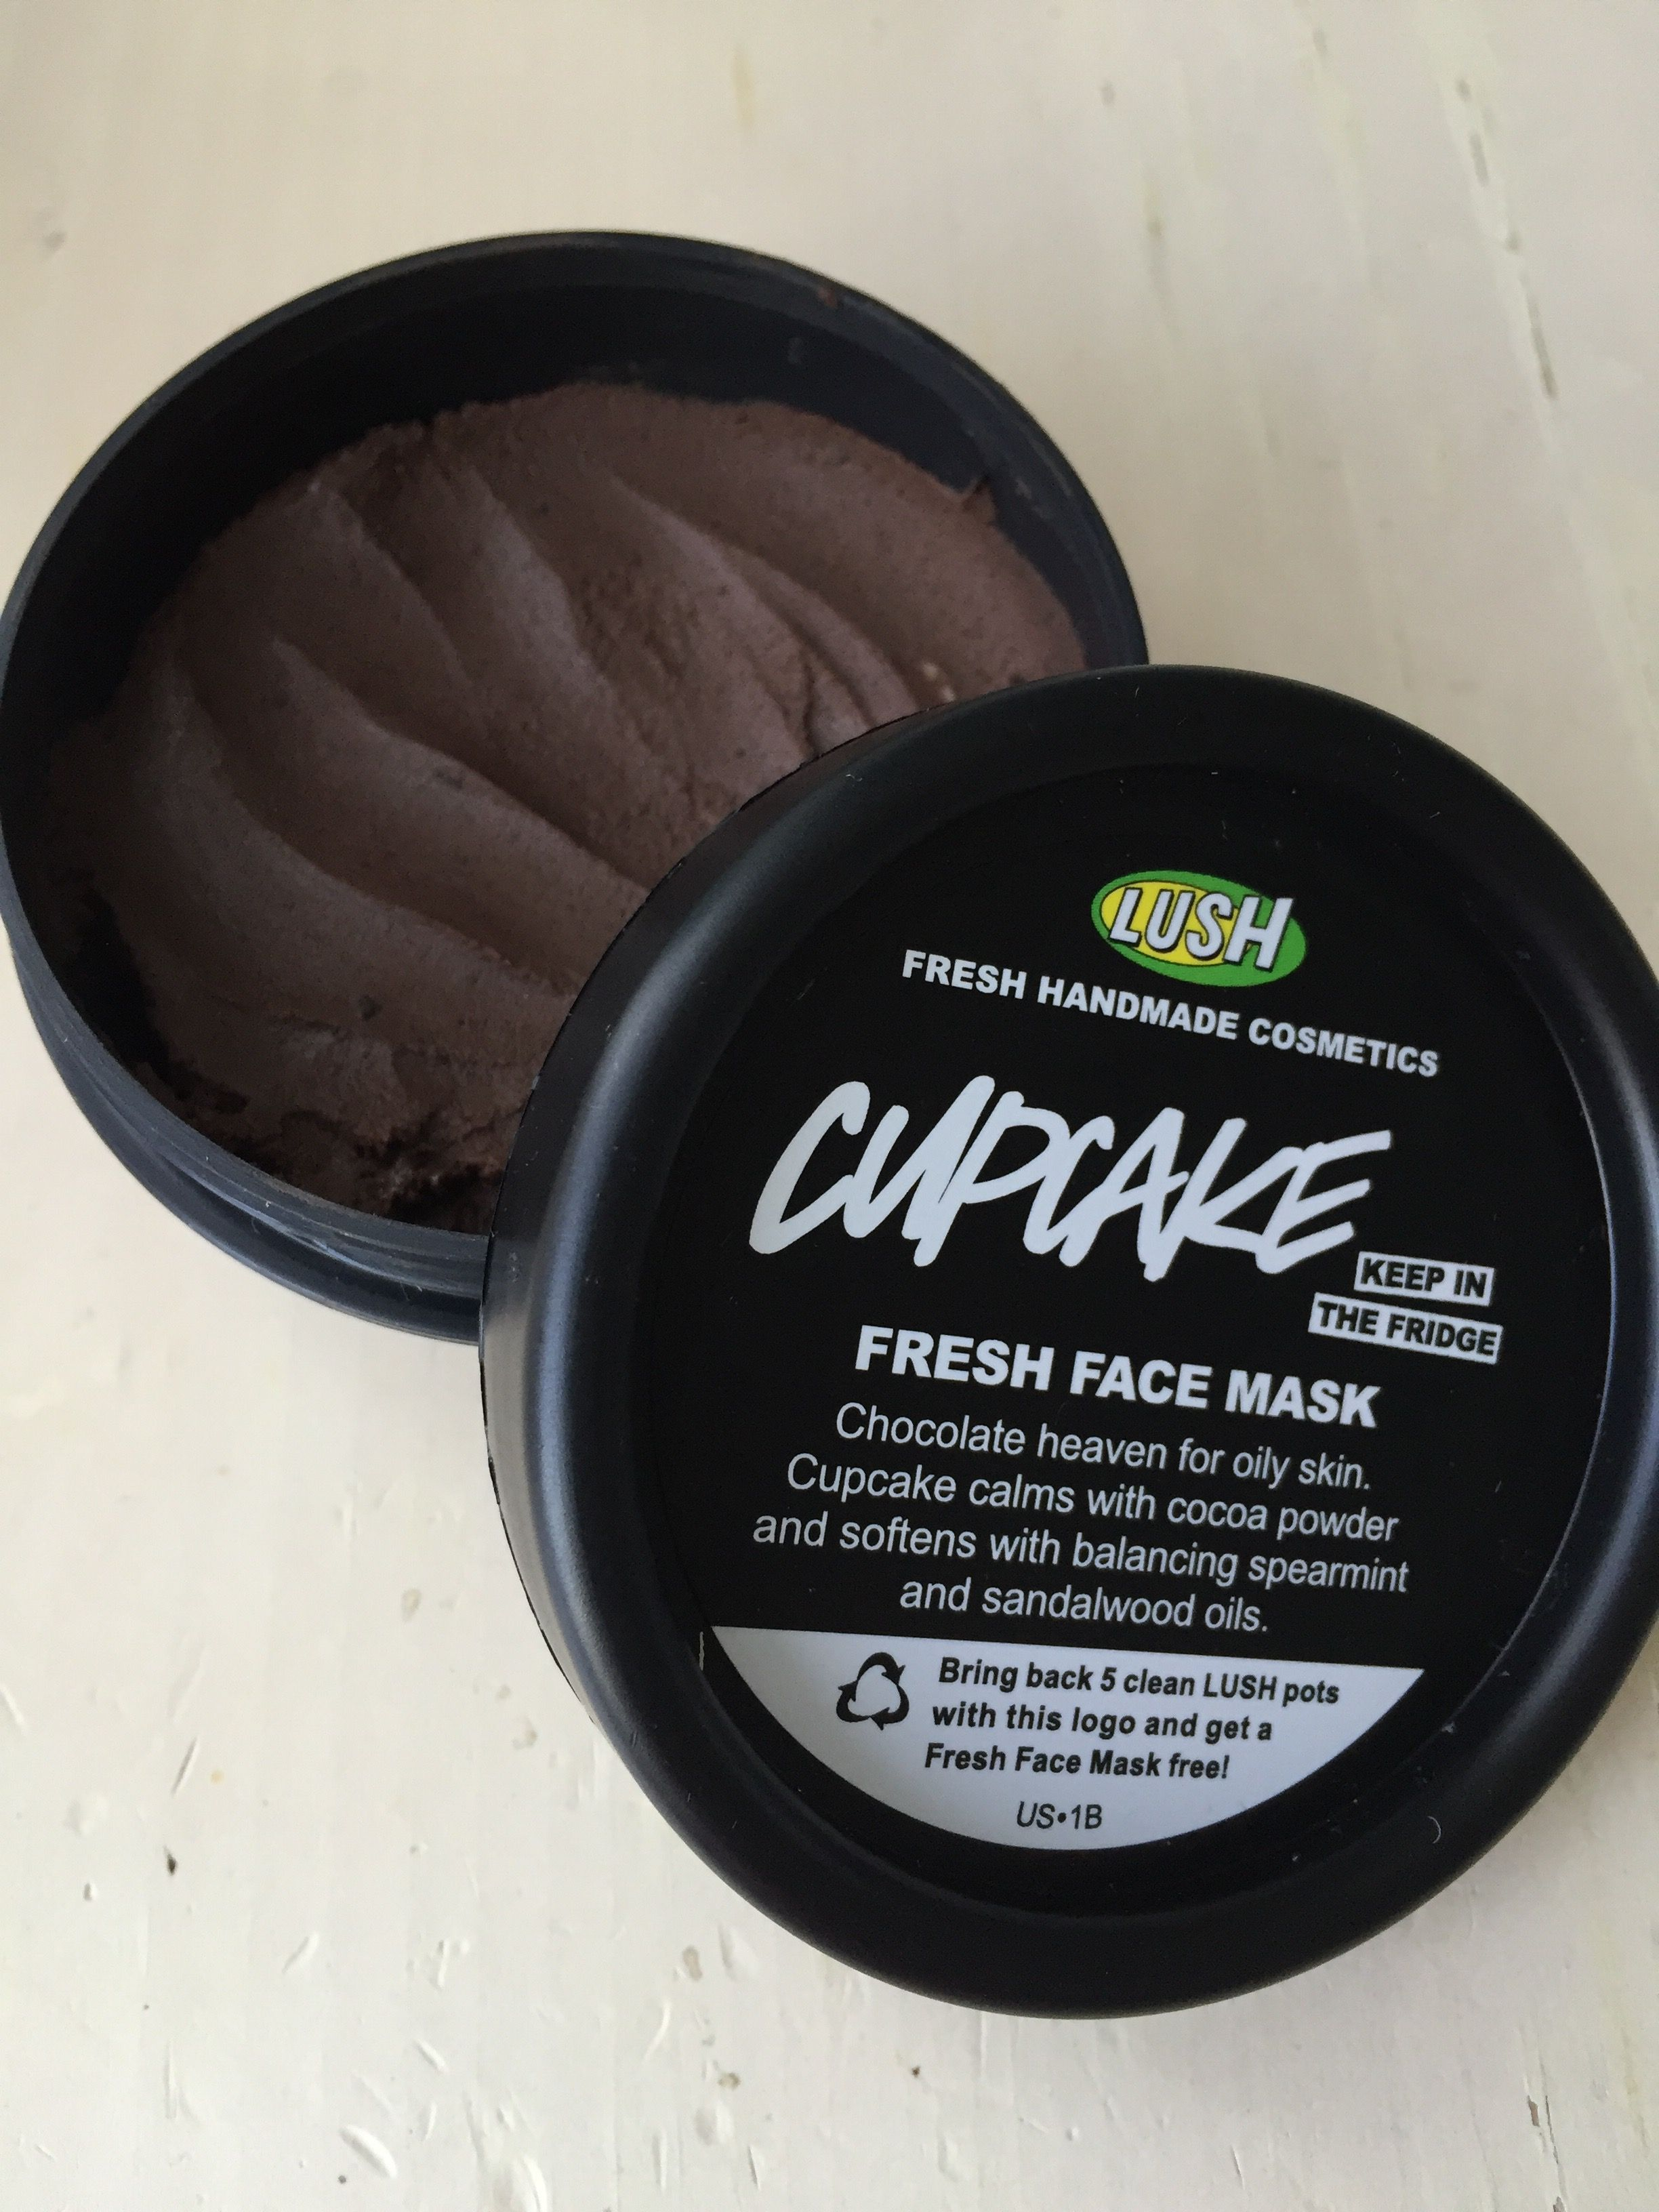 This face mask is great for people with oily skin and acne prone